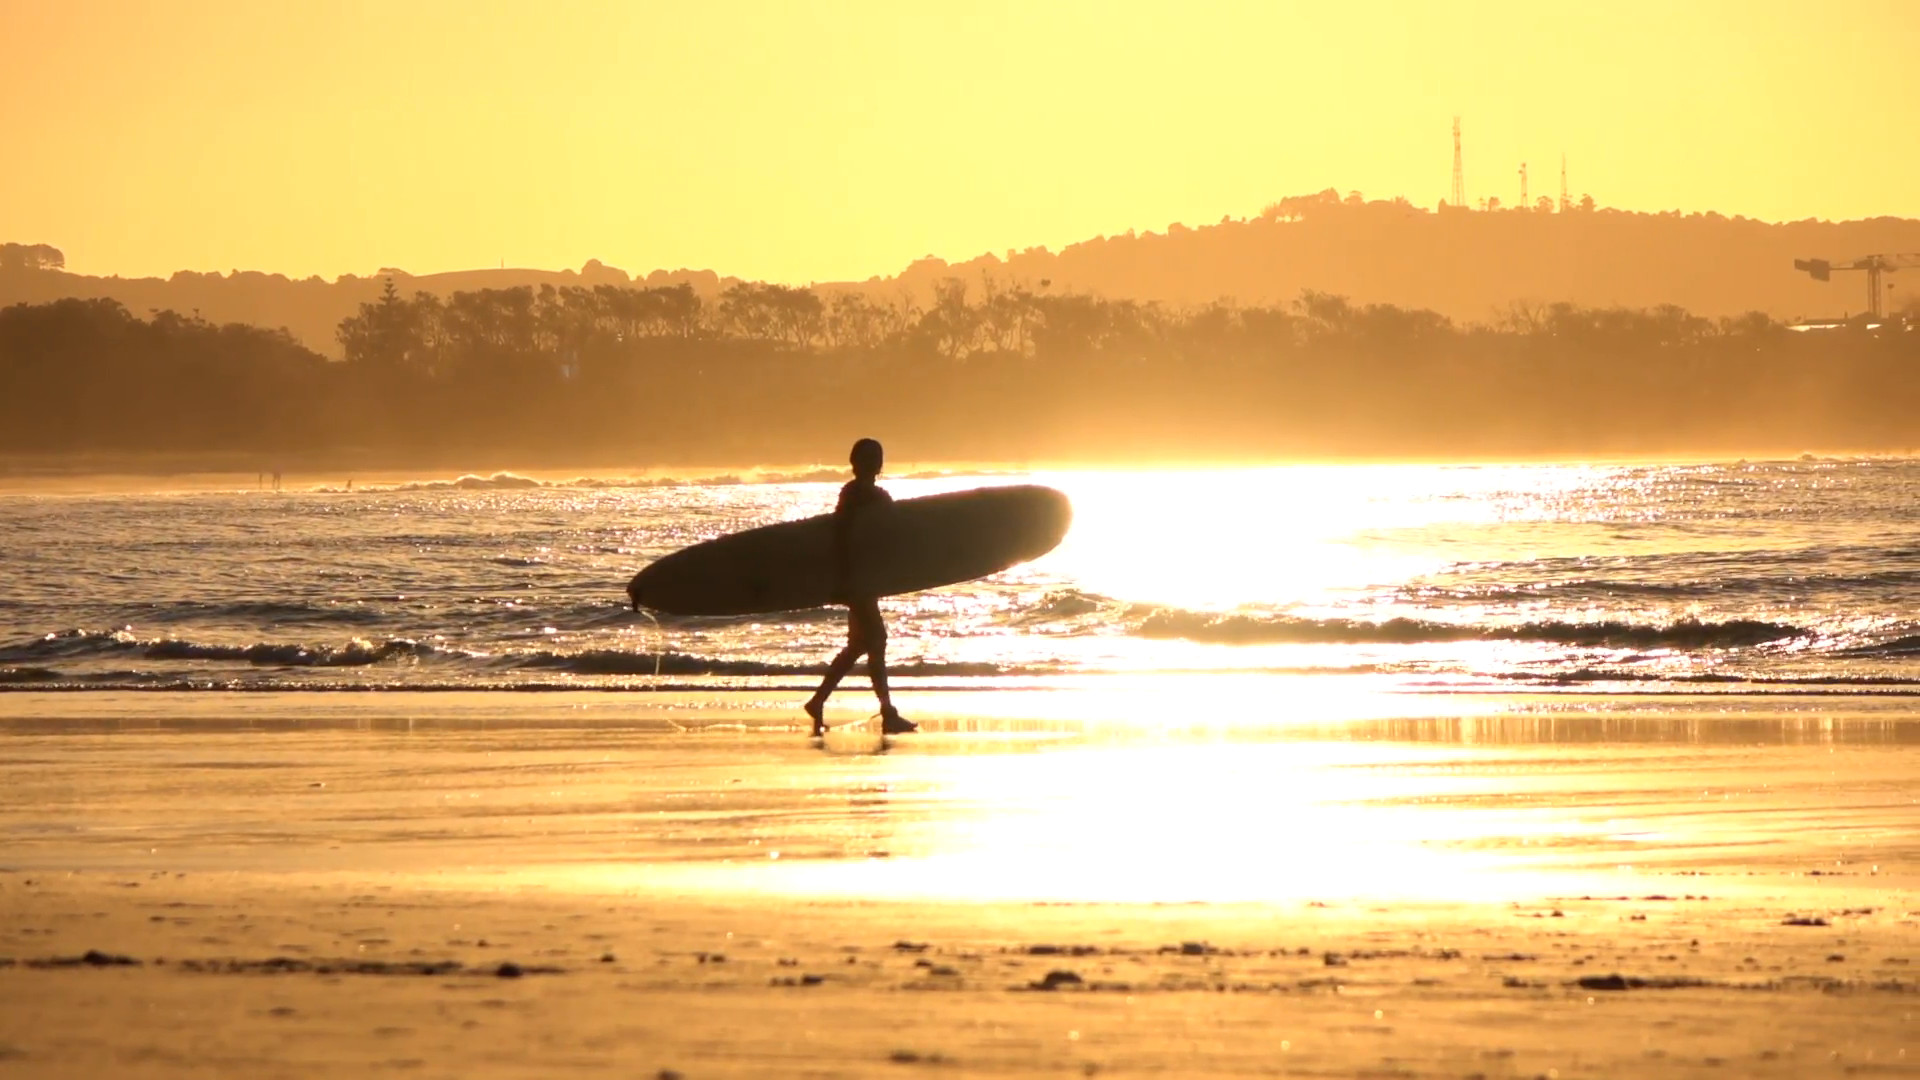 Res: 1920x1080, SLOW MOTION: Unrecognizable surfer girl carrying longboard surf at golden  sunset Stock Video Footage - Videoblocks